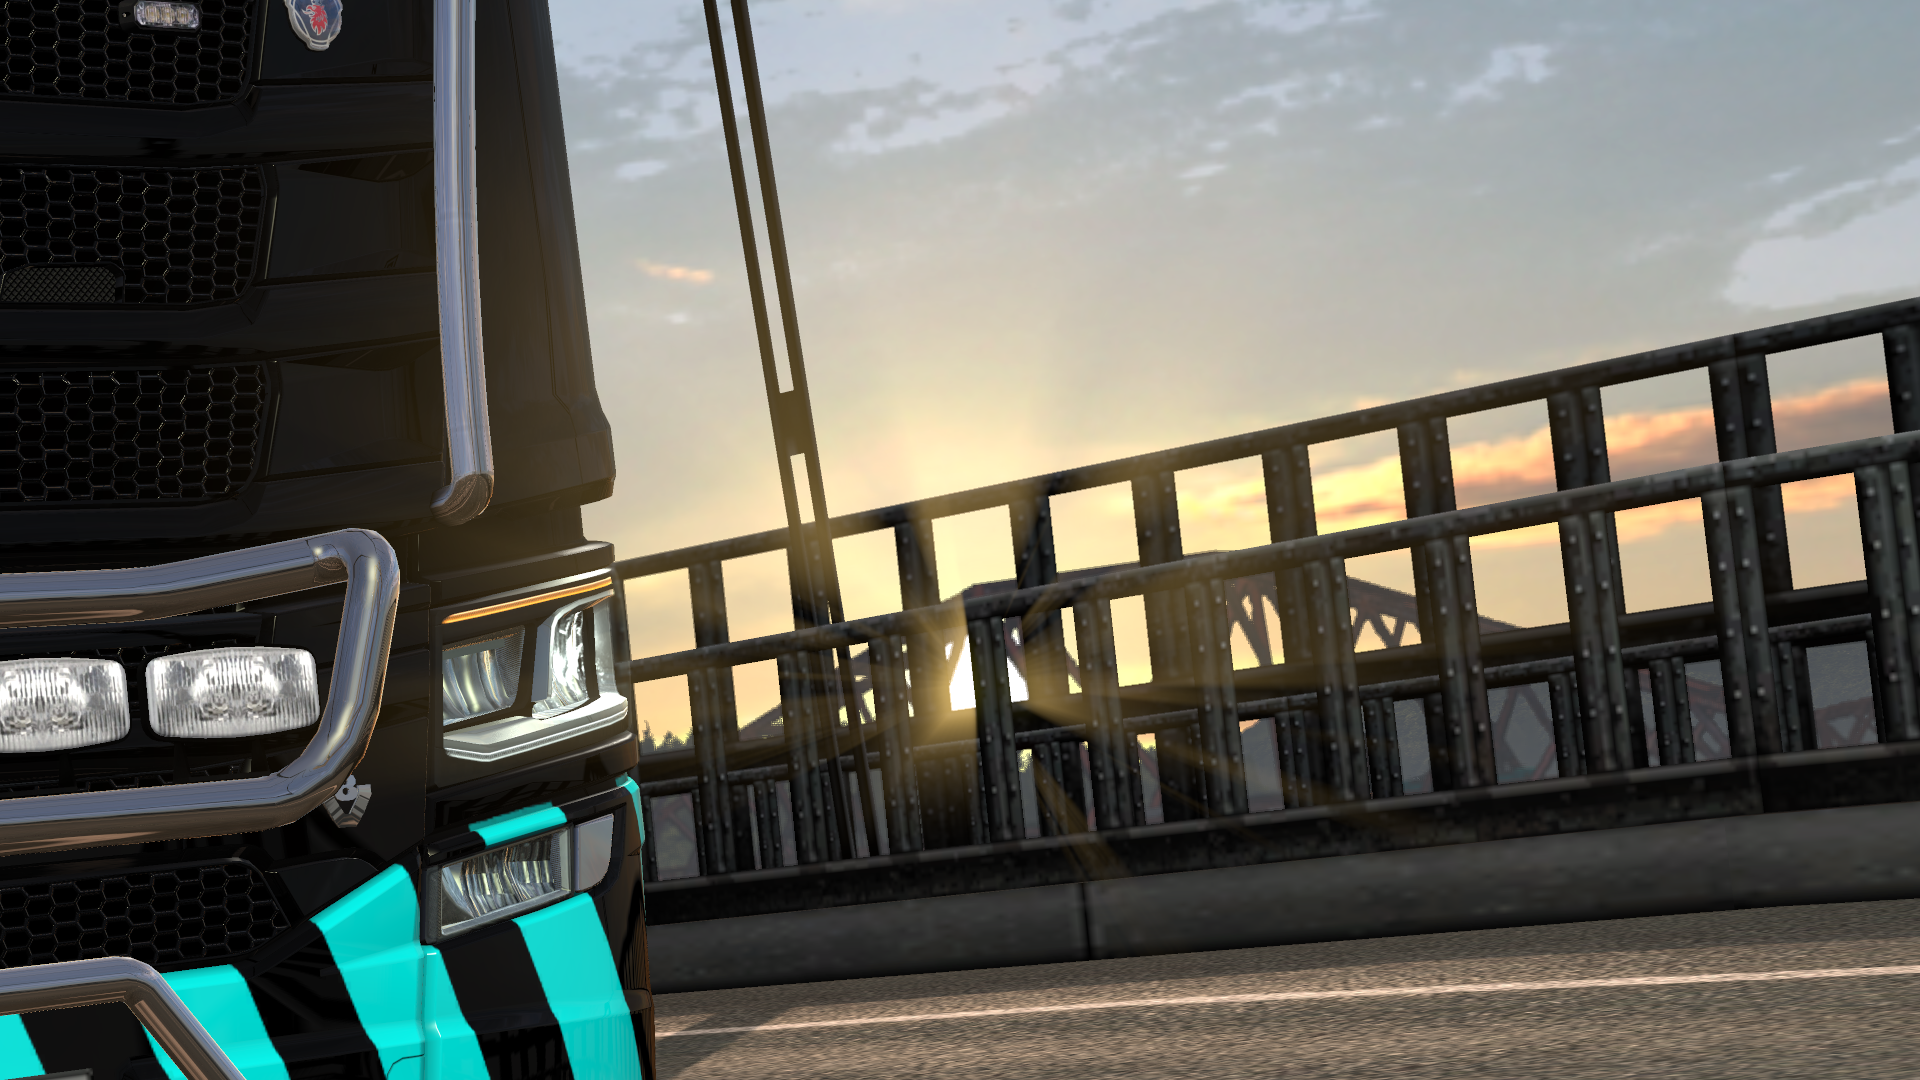 ets2_20190609_162338_00.png